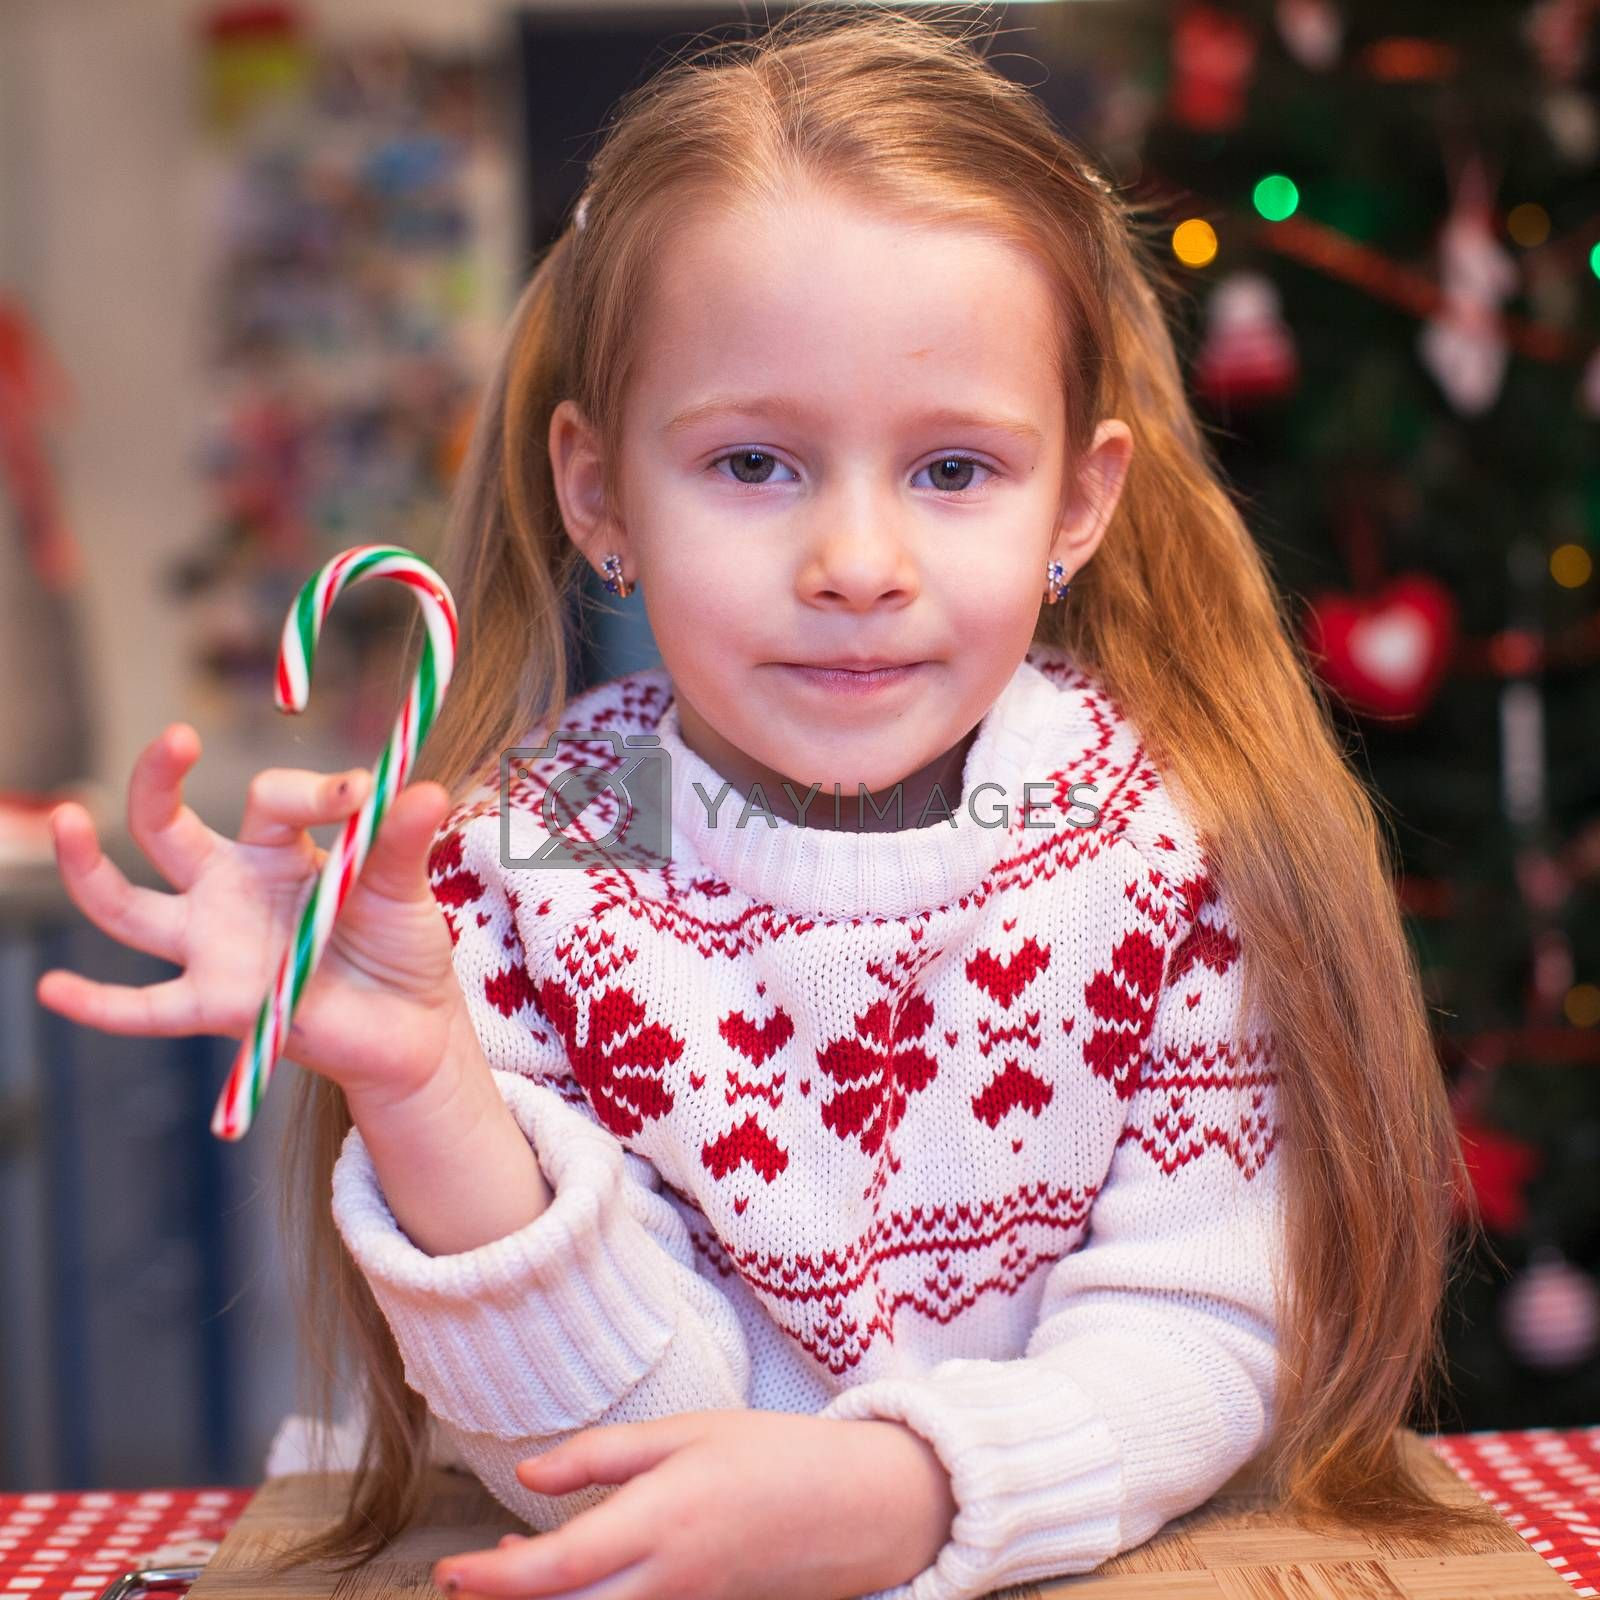 Little girl with candy in hand will prepare Christmas cakes